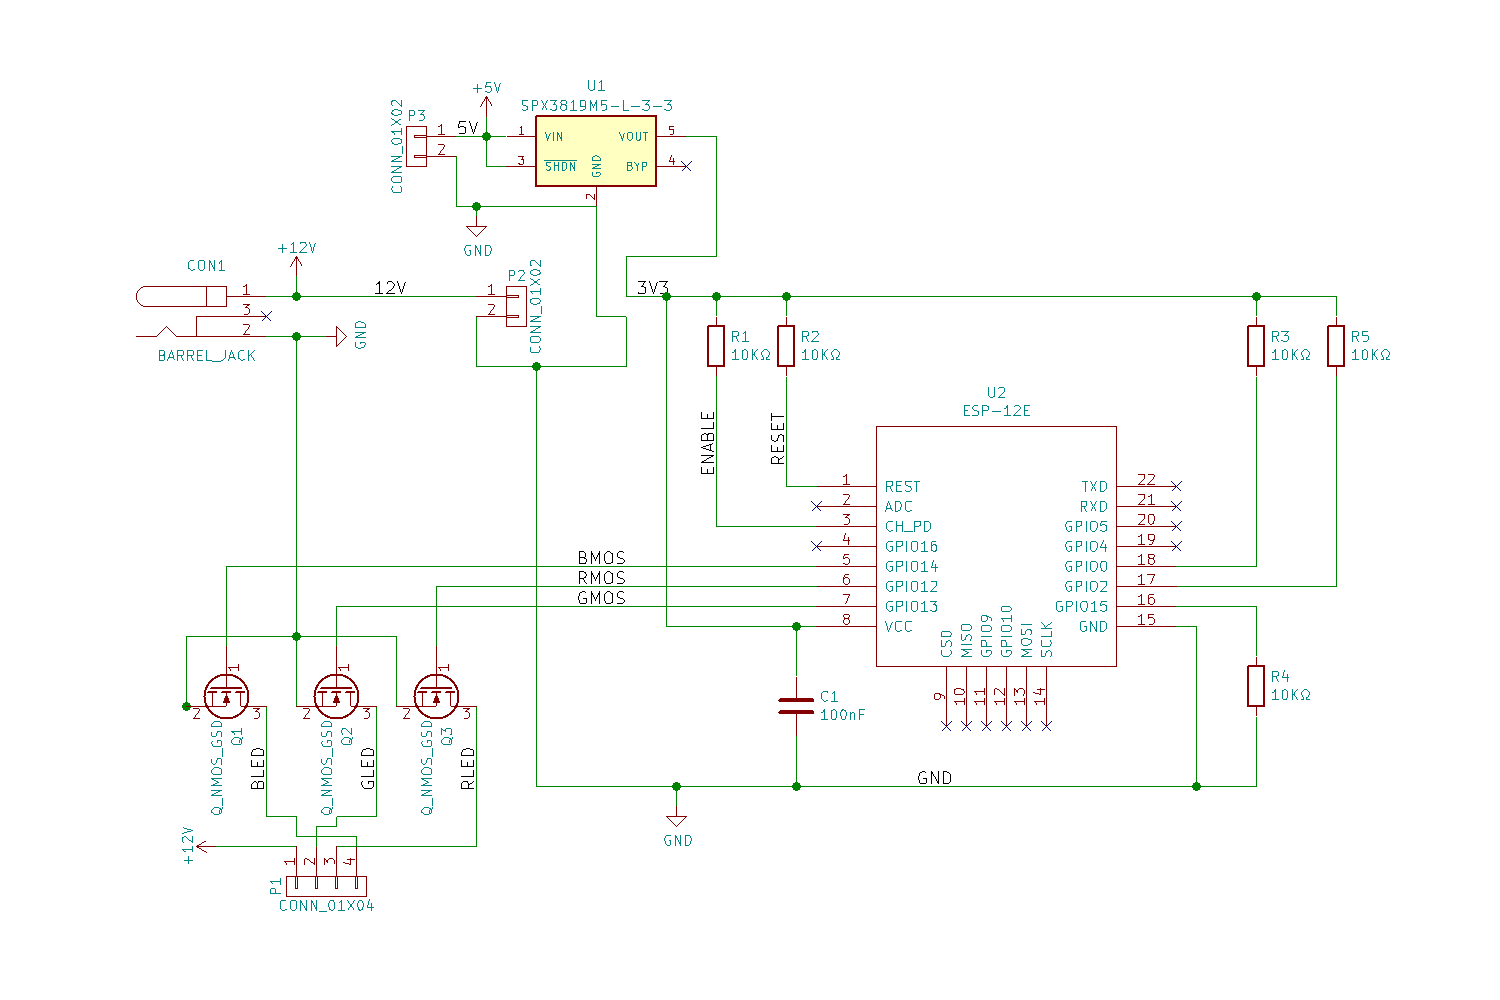 The controller schematic.